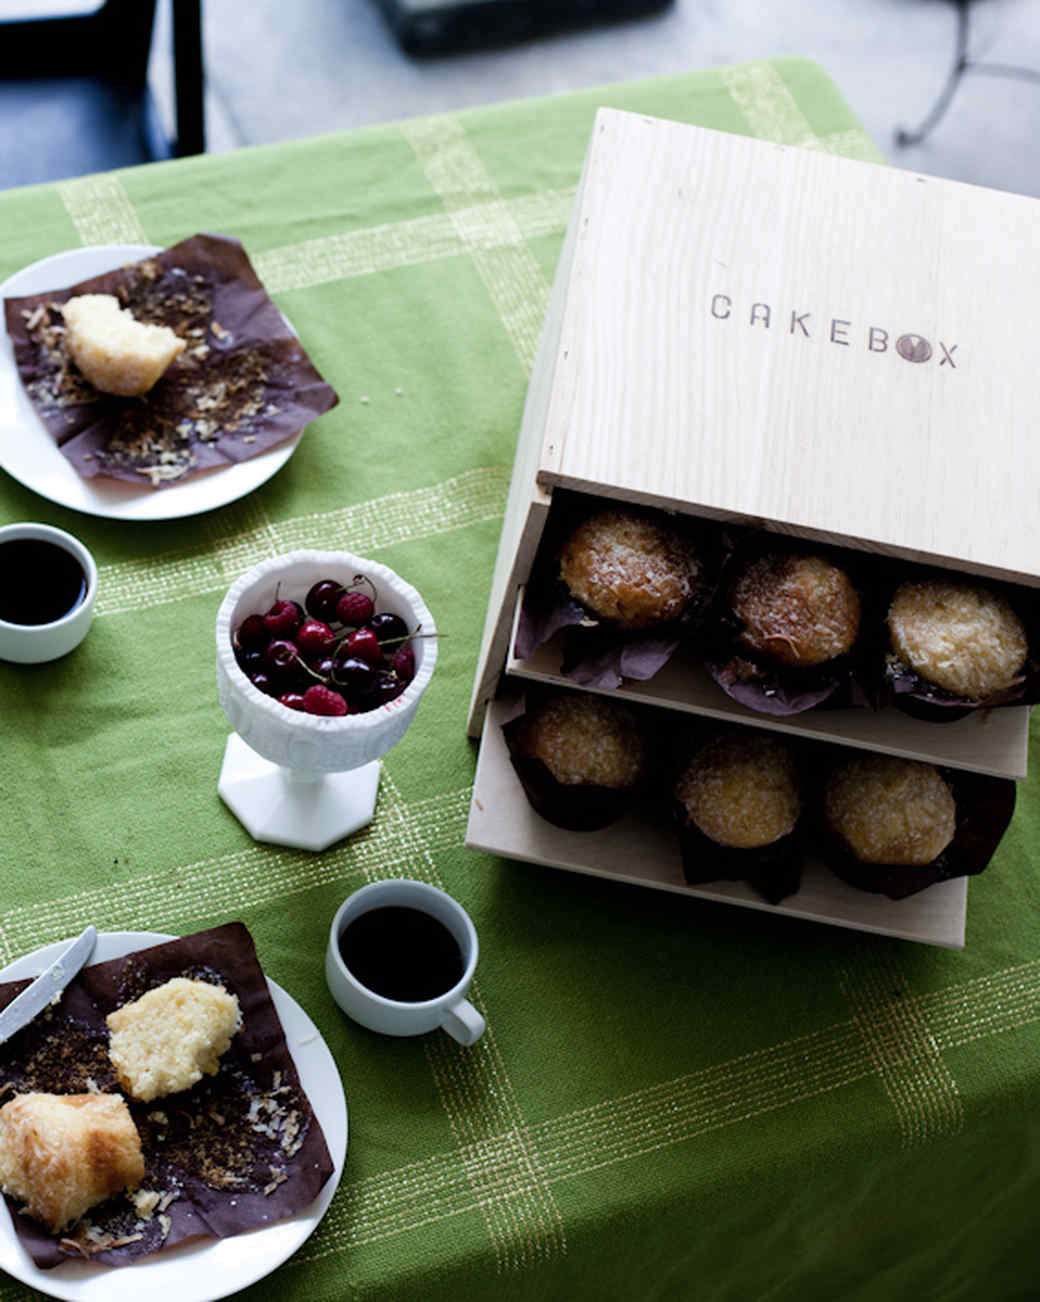 cakebox-piebox-muffins-am-032014.jpg